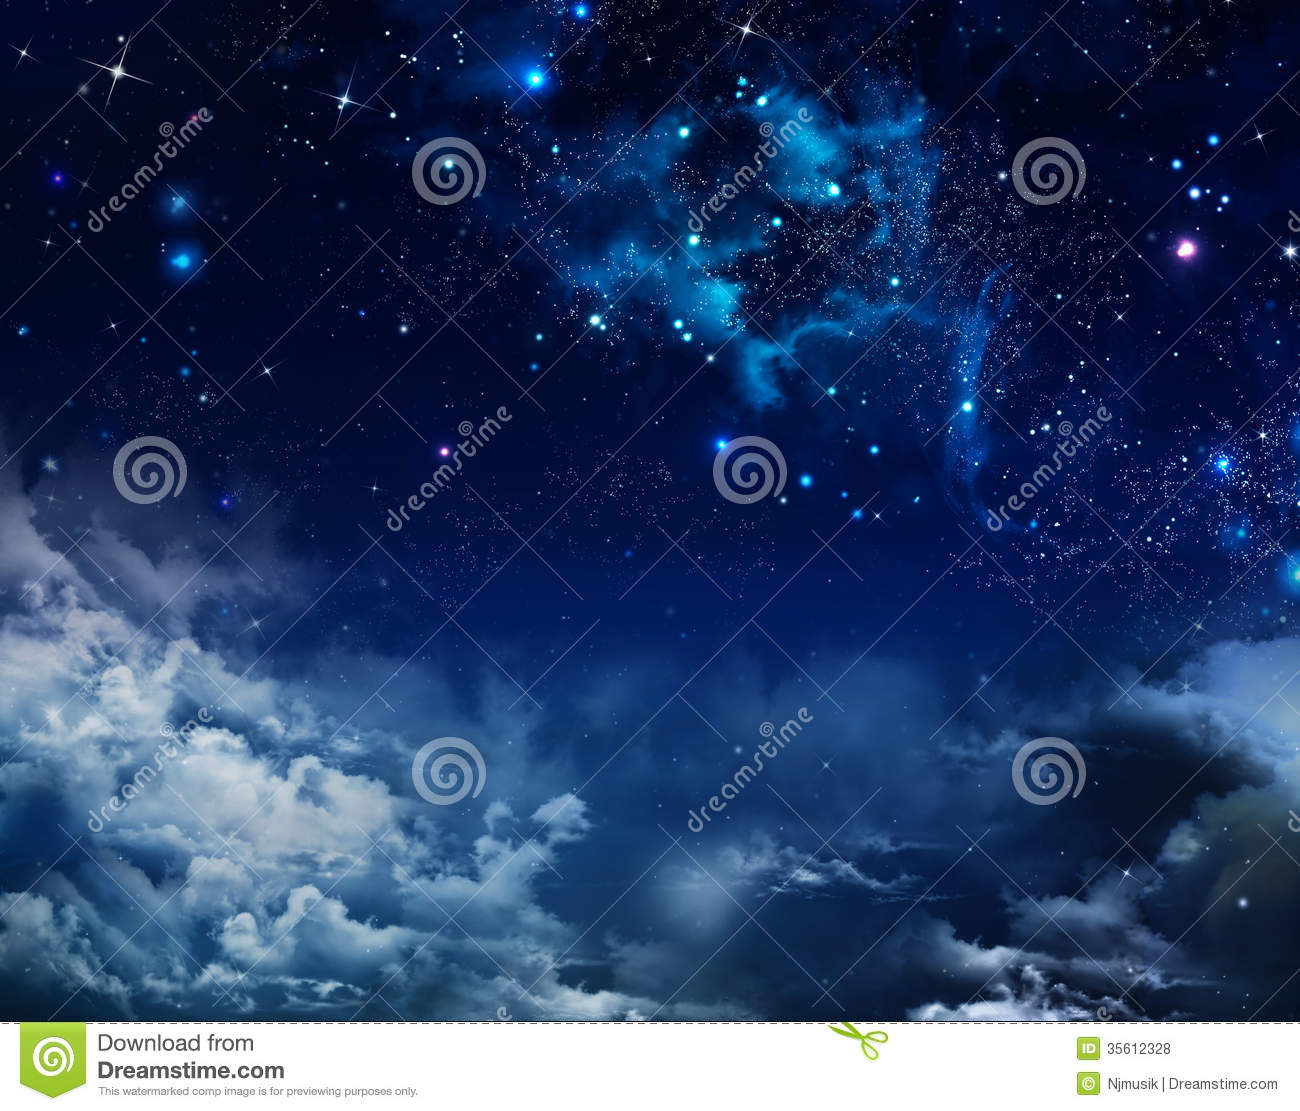 Abstract background starry sky